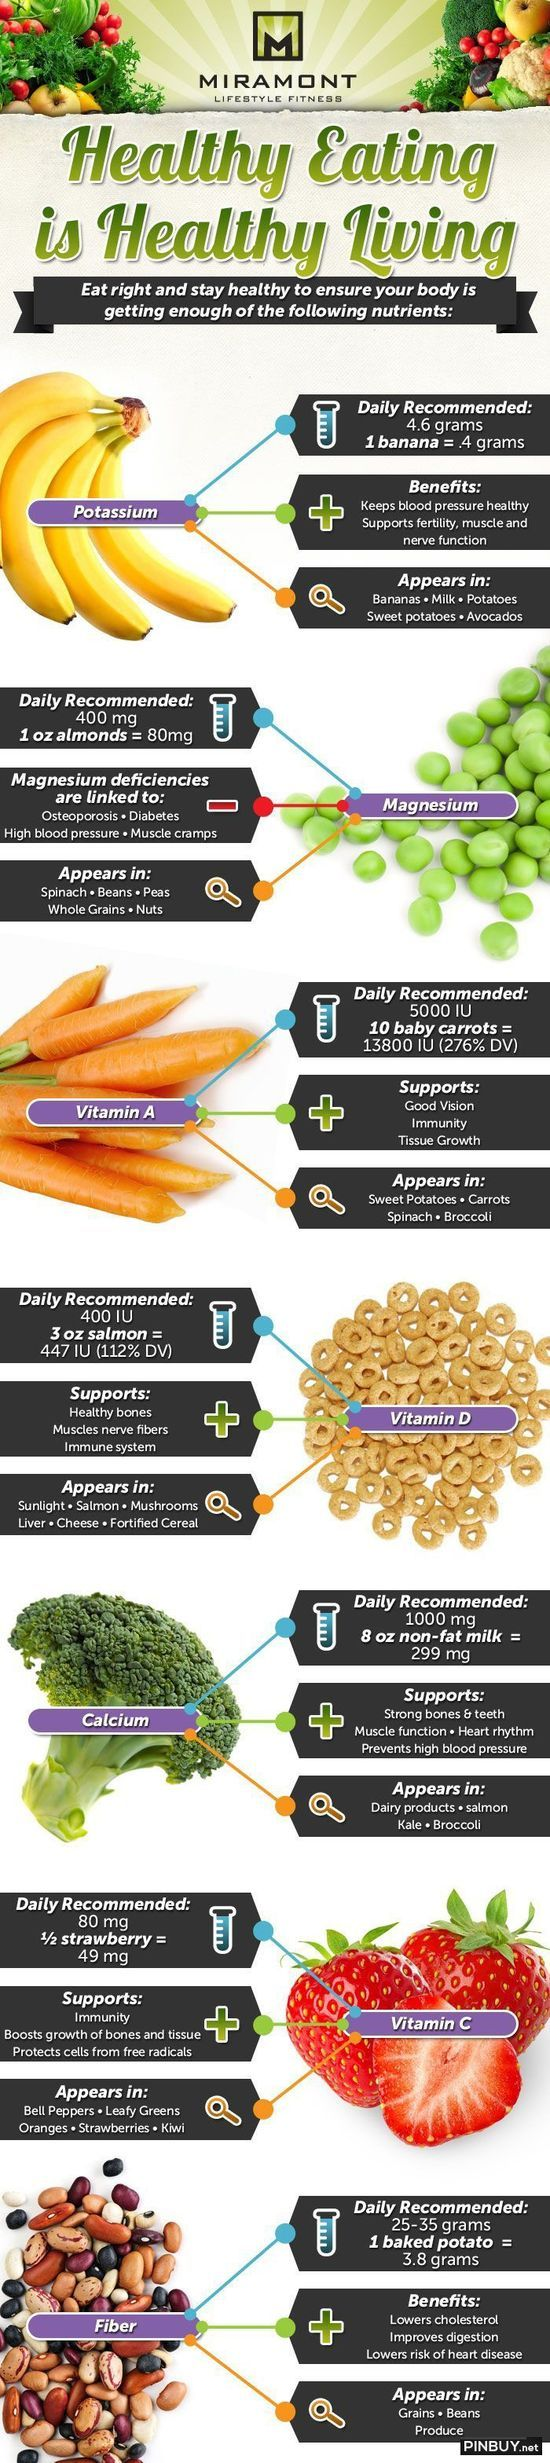 Healthy Eating Infographic - PinBuy